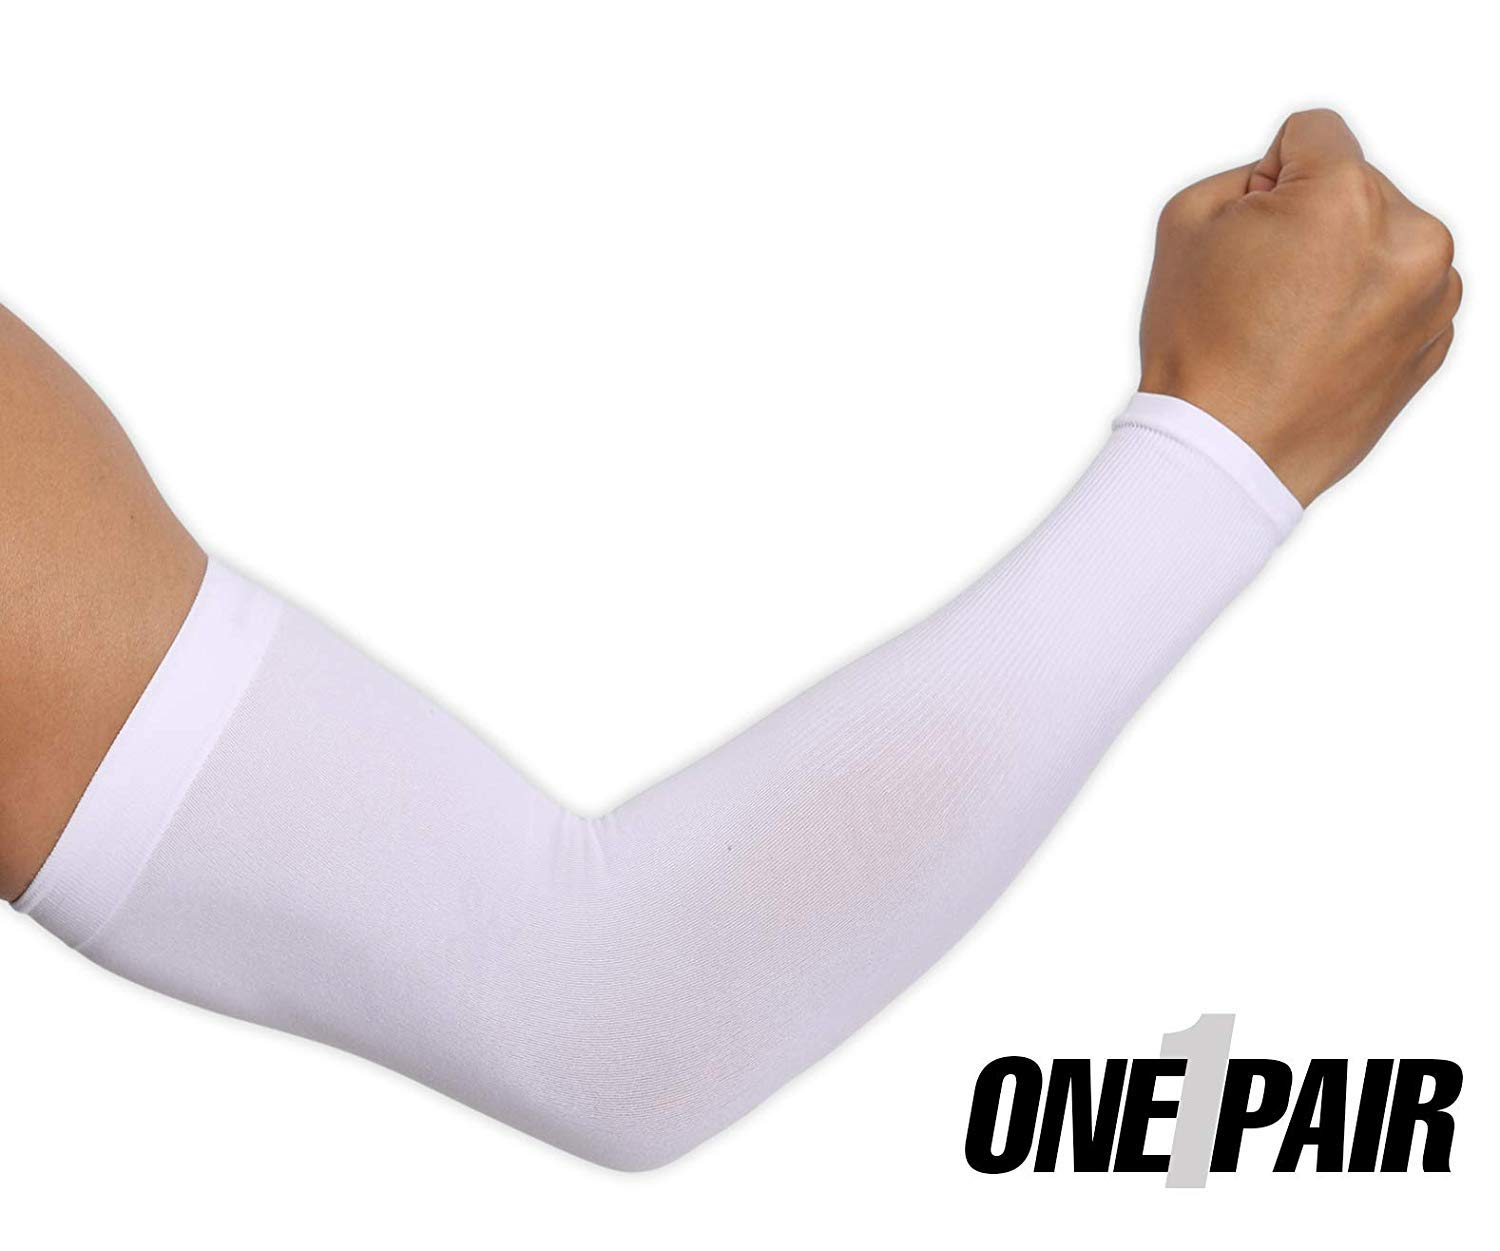 UV Protection Cooling Arm Sleeves - UPF 50 Long Sun Sleeves for Men & Women. Perfect for Cycling, Driving, Running, Basketball, Football & Outdoor Activities.